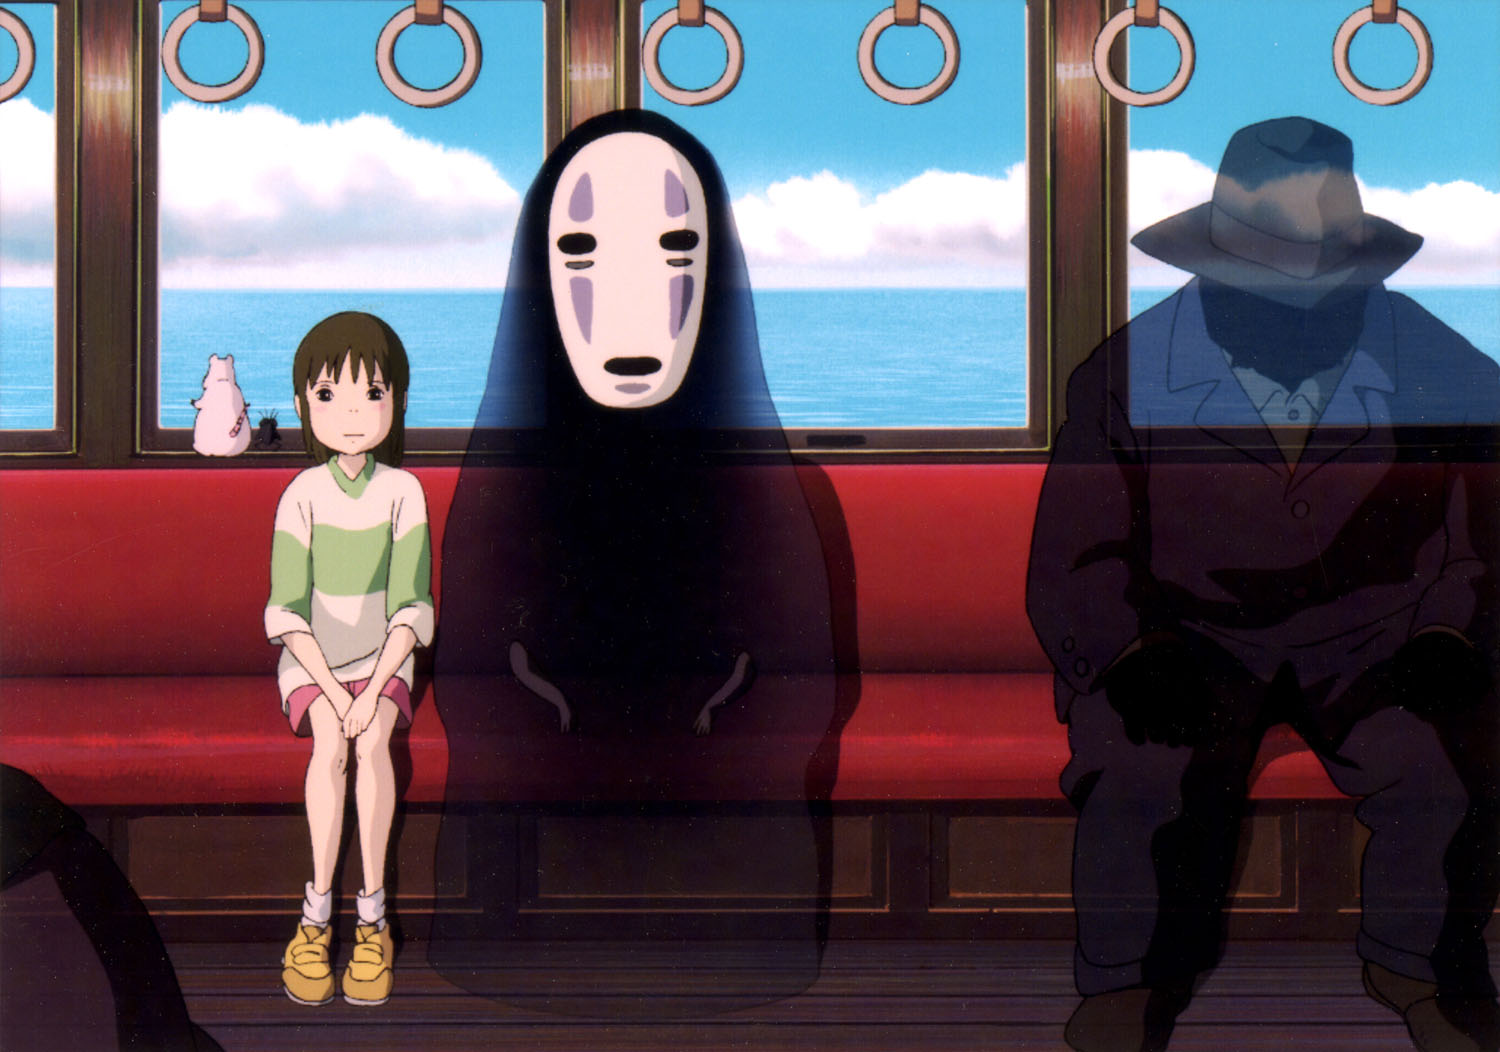 Spirited Away Wallpapers Movie Hq Spirited Away Pictures 4k Wallpapers 2019